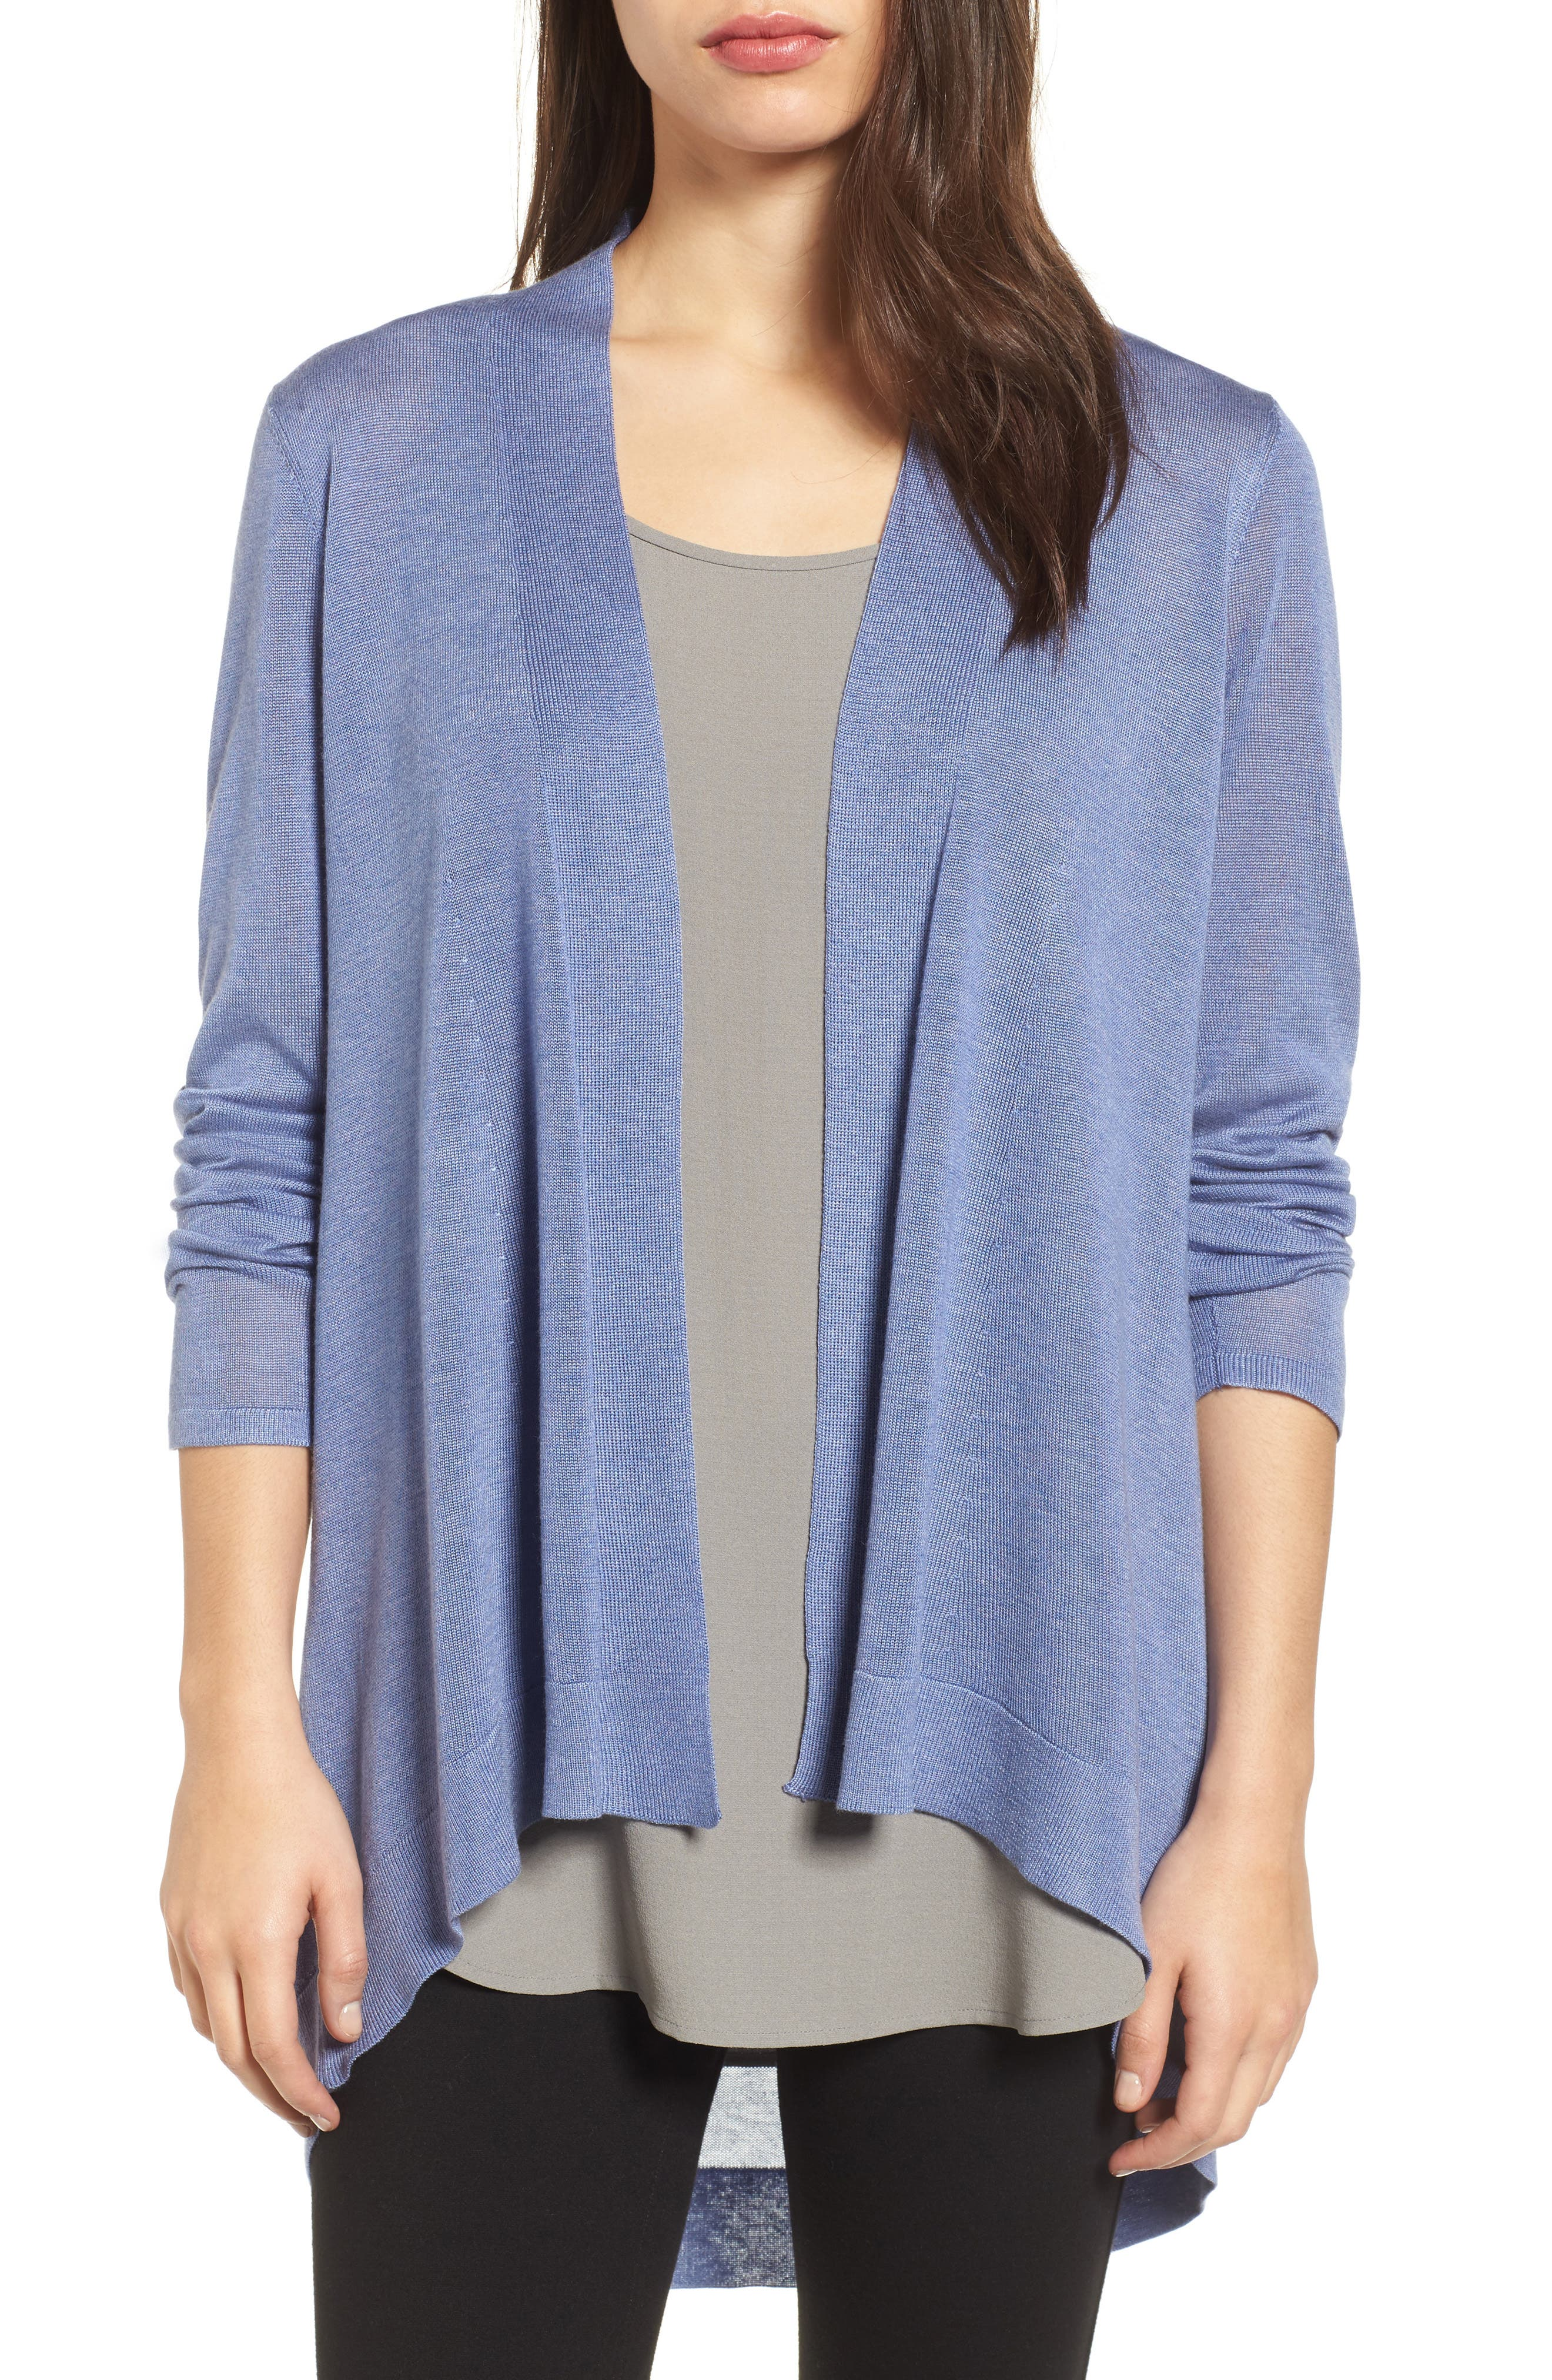 Tencel<sup>®</sup> Lyocell & Merino Wool Shaped Cardigan,                             Main thumbnail 1, color,                             Periwinkle